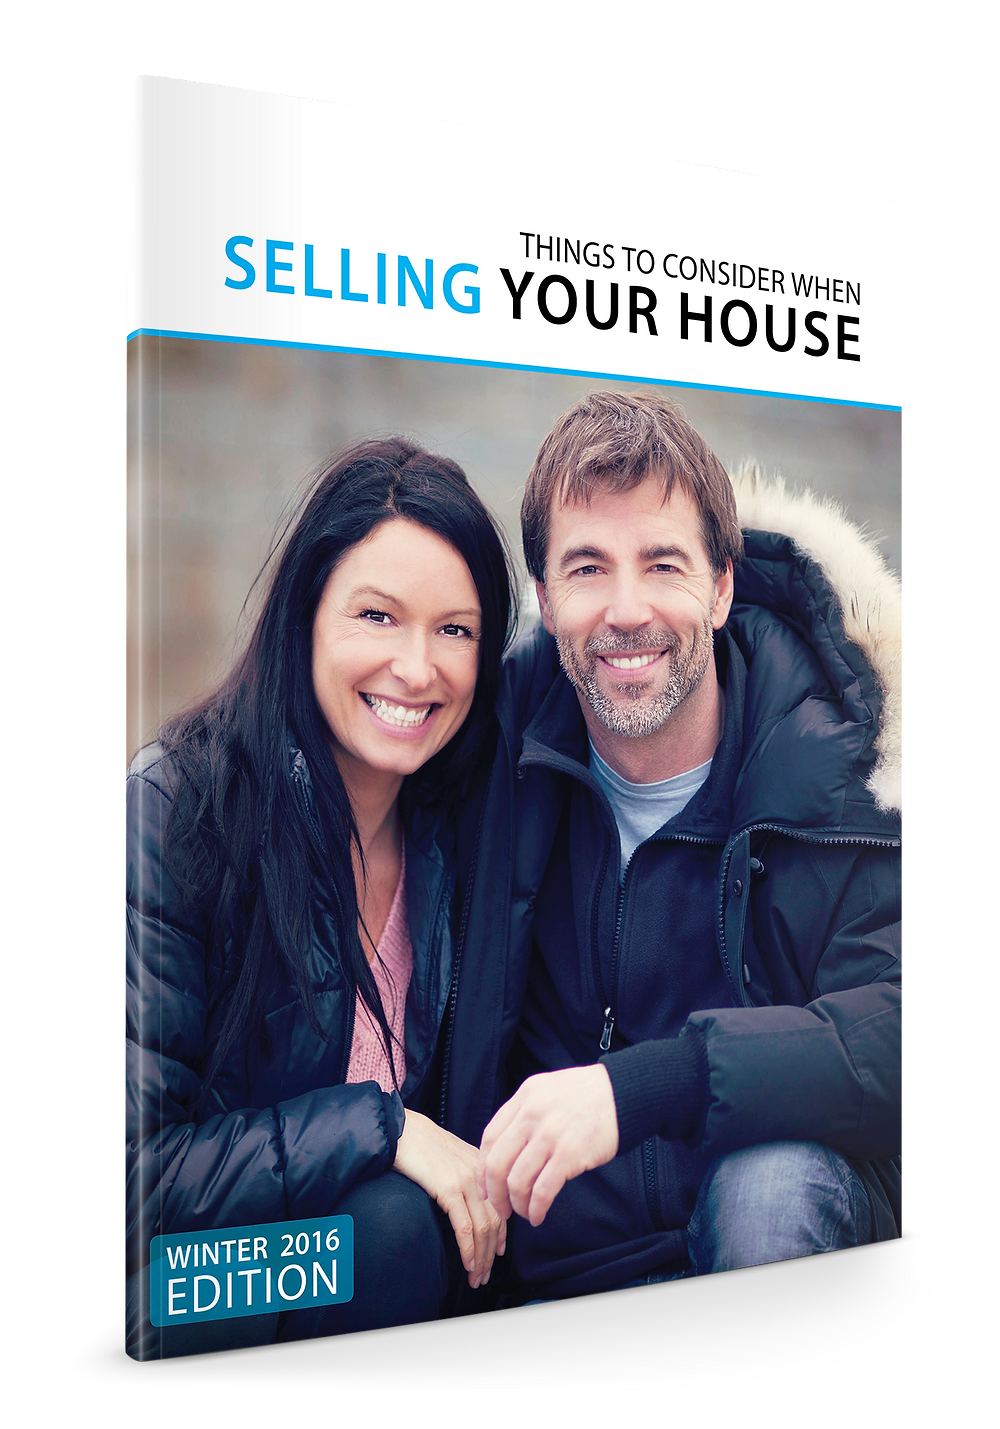 sellingyourhousewinter2016